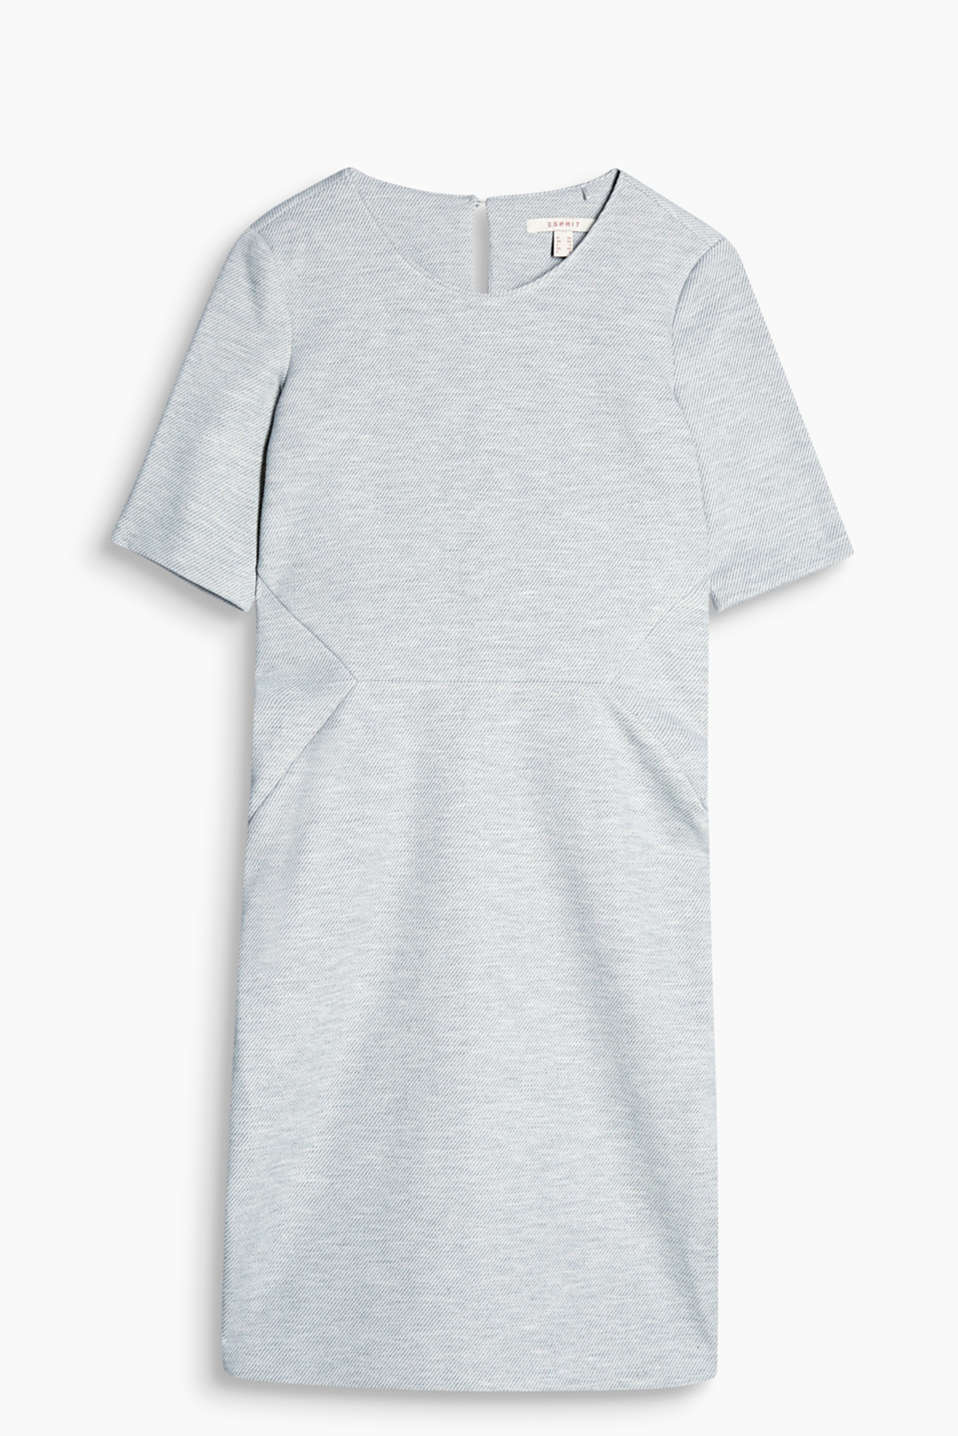 Stylish shift dress with a diagonal texture and figure-defining seams, jersey/stretch